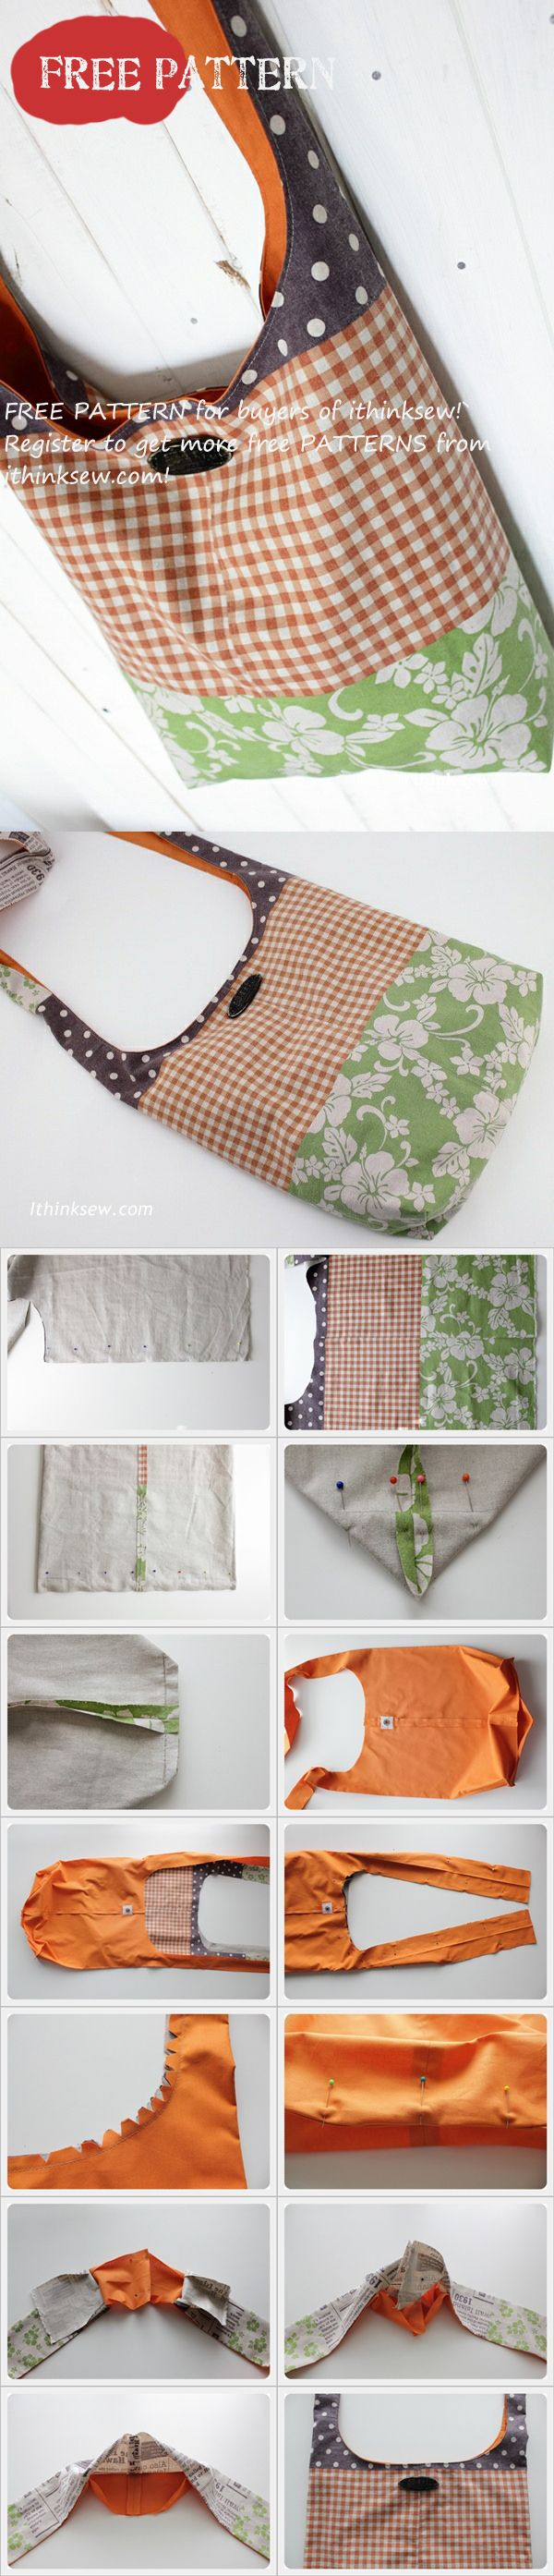 Free Patterns for buyers - Alex Messenger Bag